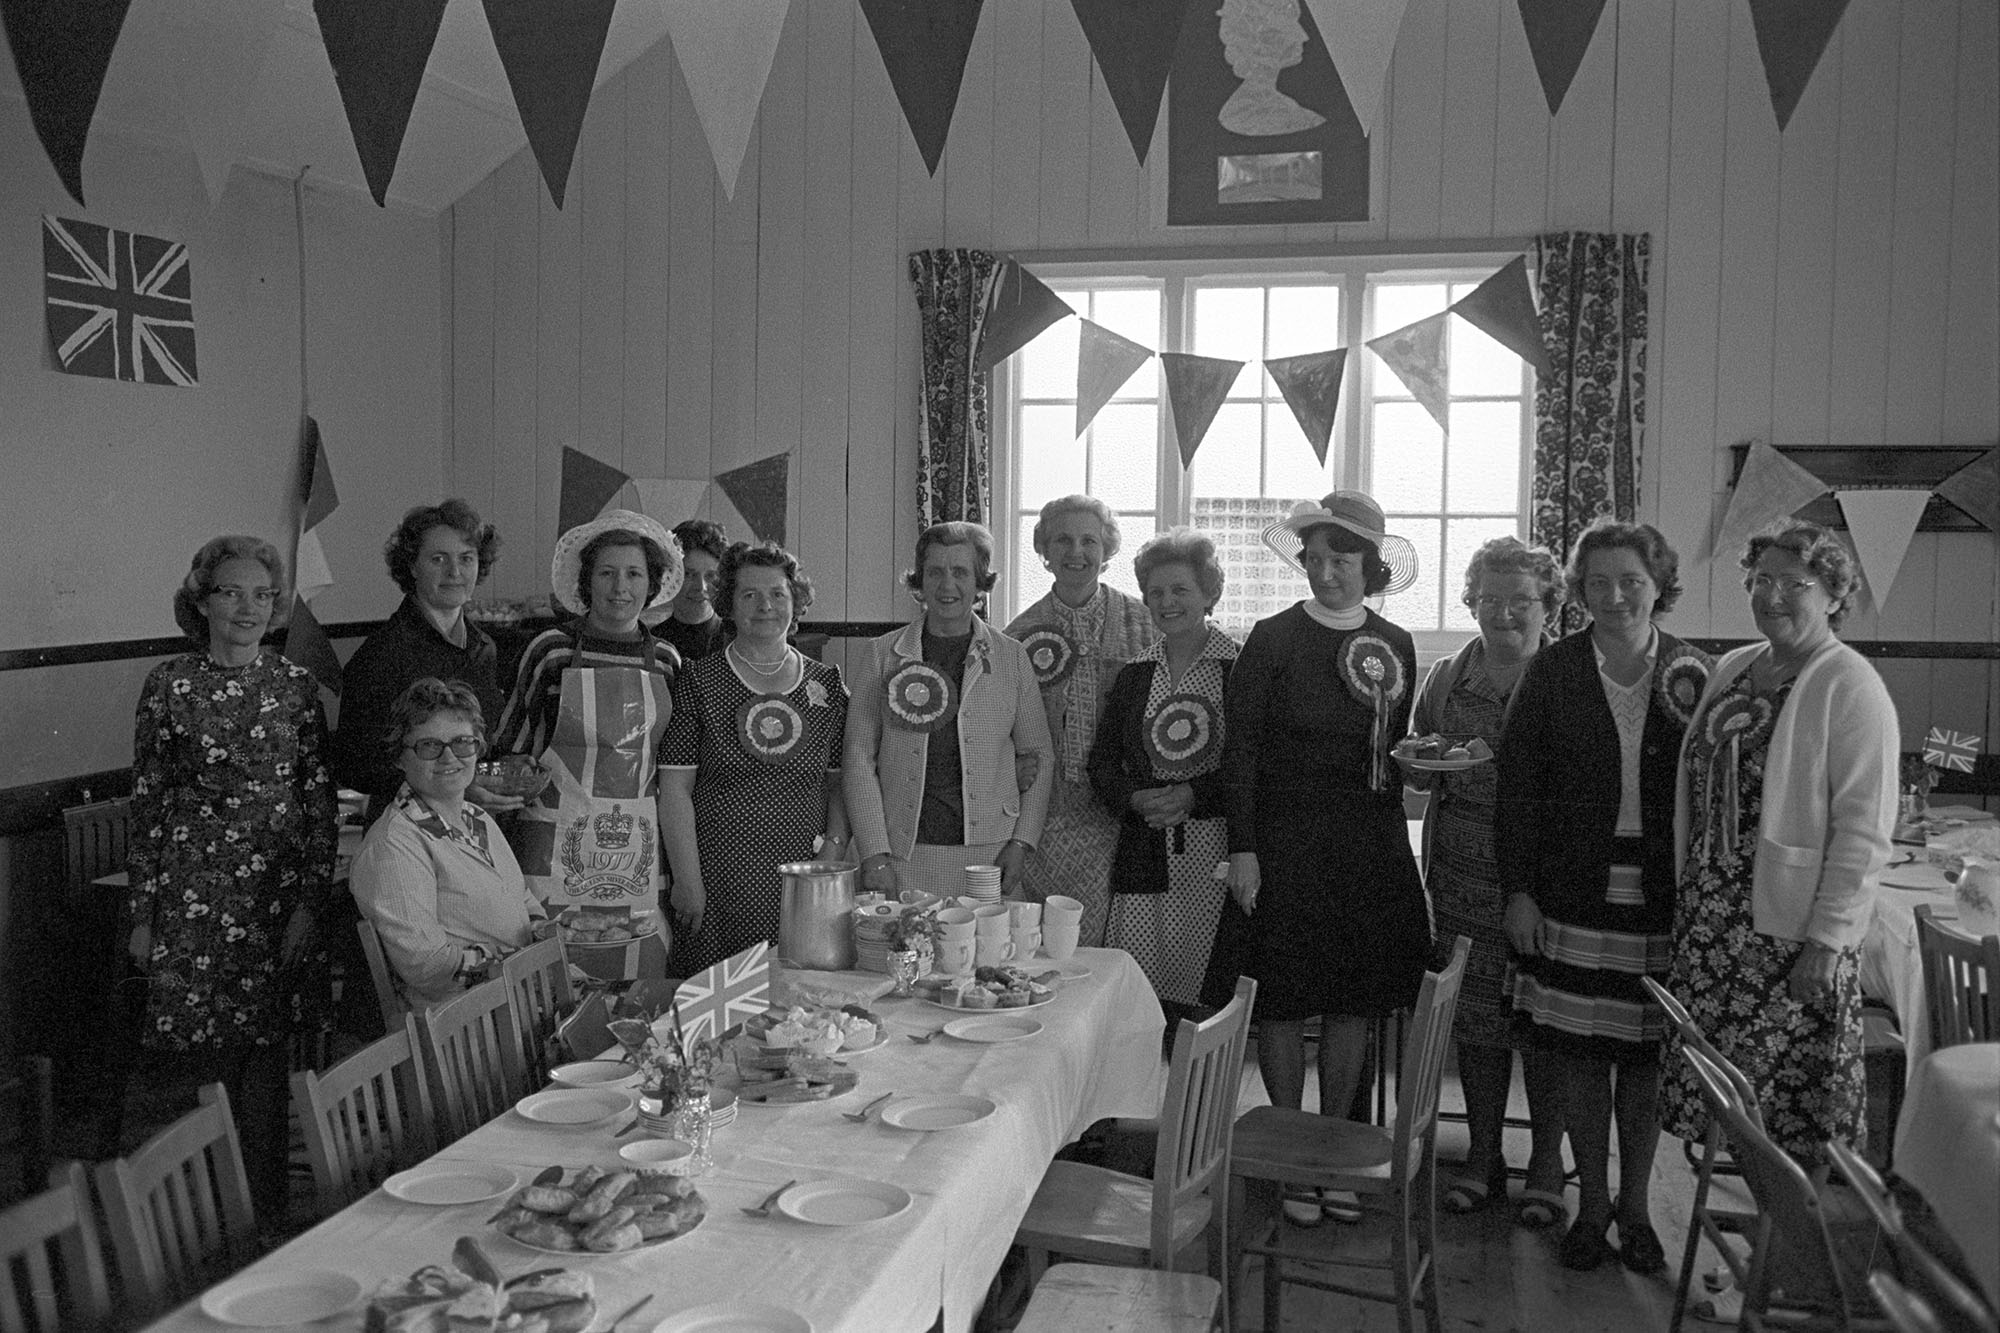 Group of women, in village hall before Jubilee tea which they had prepared.<br /> [Women in High Bickington village hall standing by the tea they have prepared for the Silver Jubilee of Queen Elizabeth II. The tables are laid with cakes and sandwiches and the hall is decorated with bunting and union jack flags. Some of the women are wearing rosettes.]